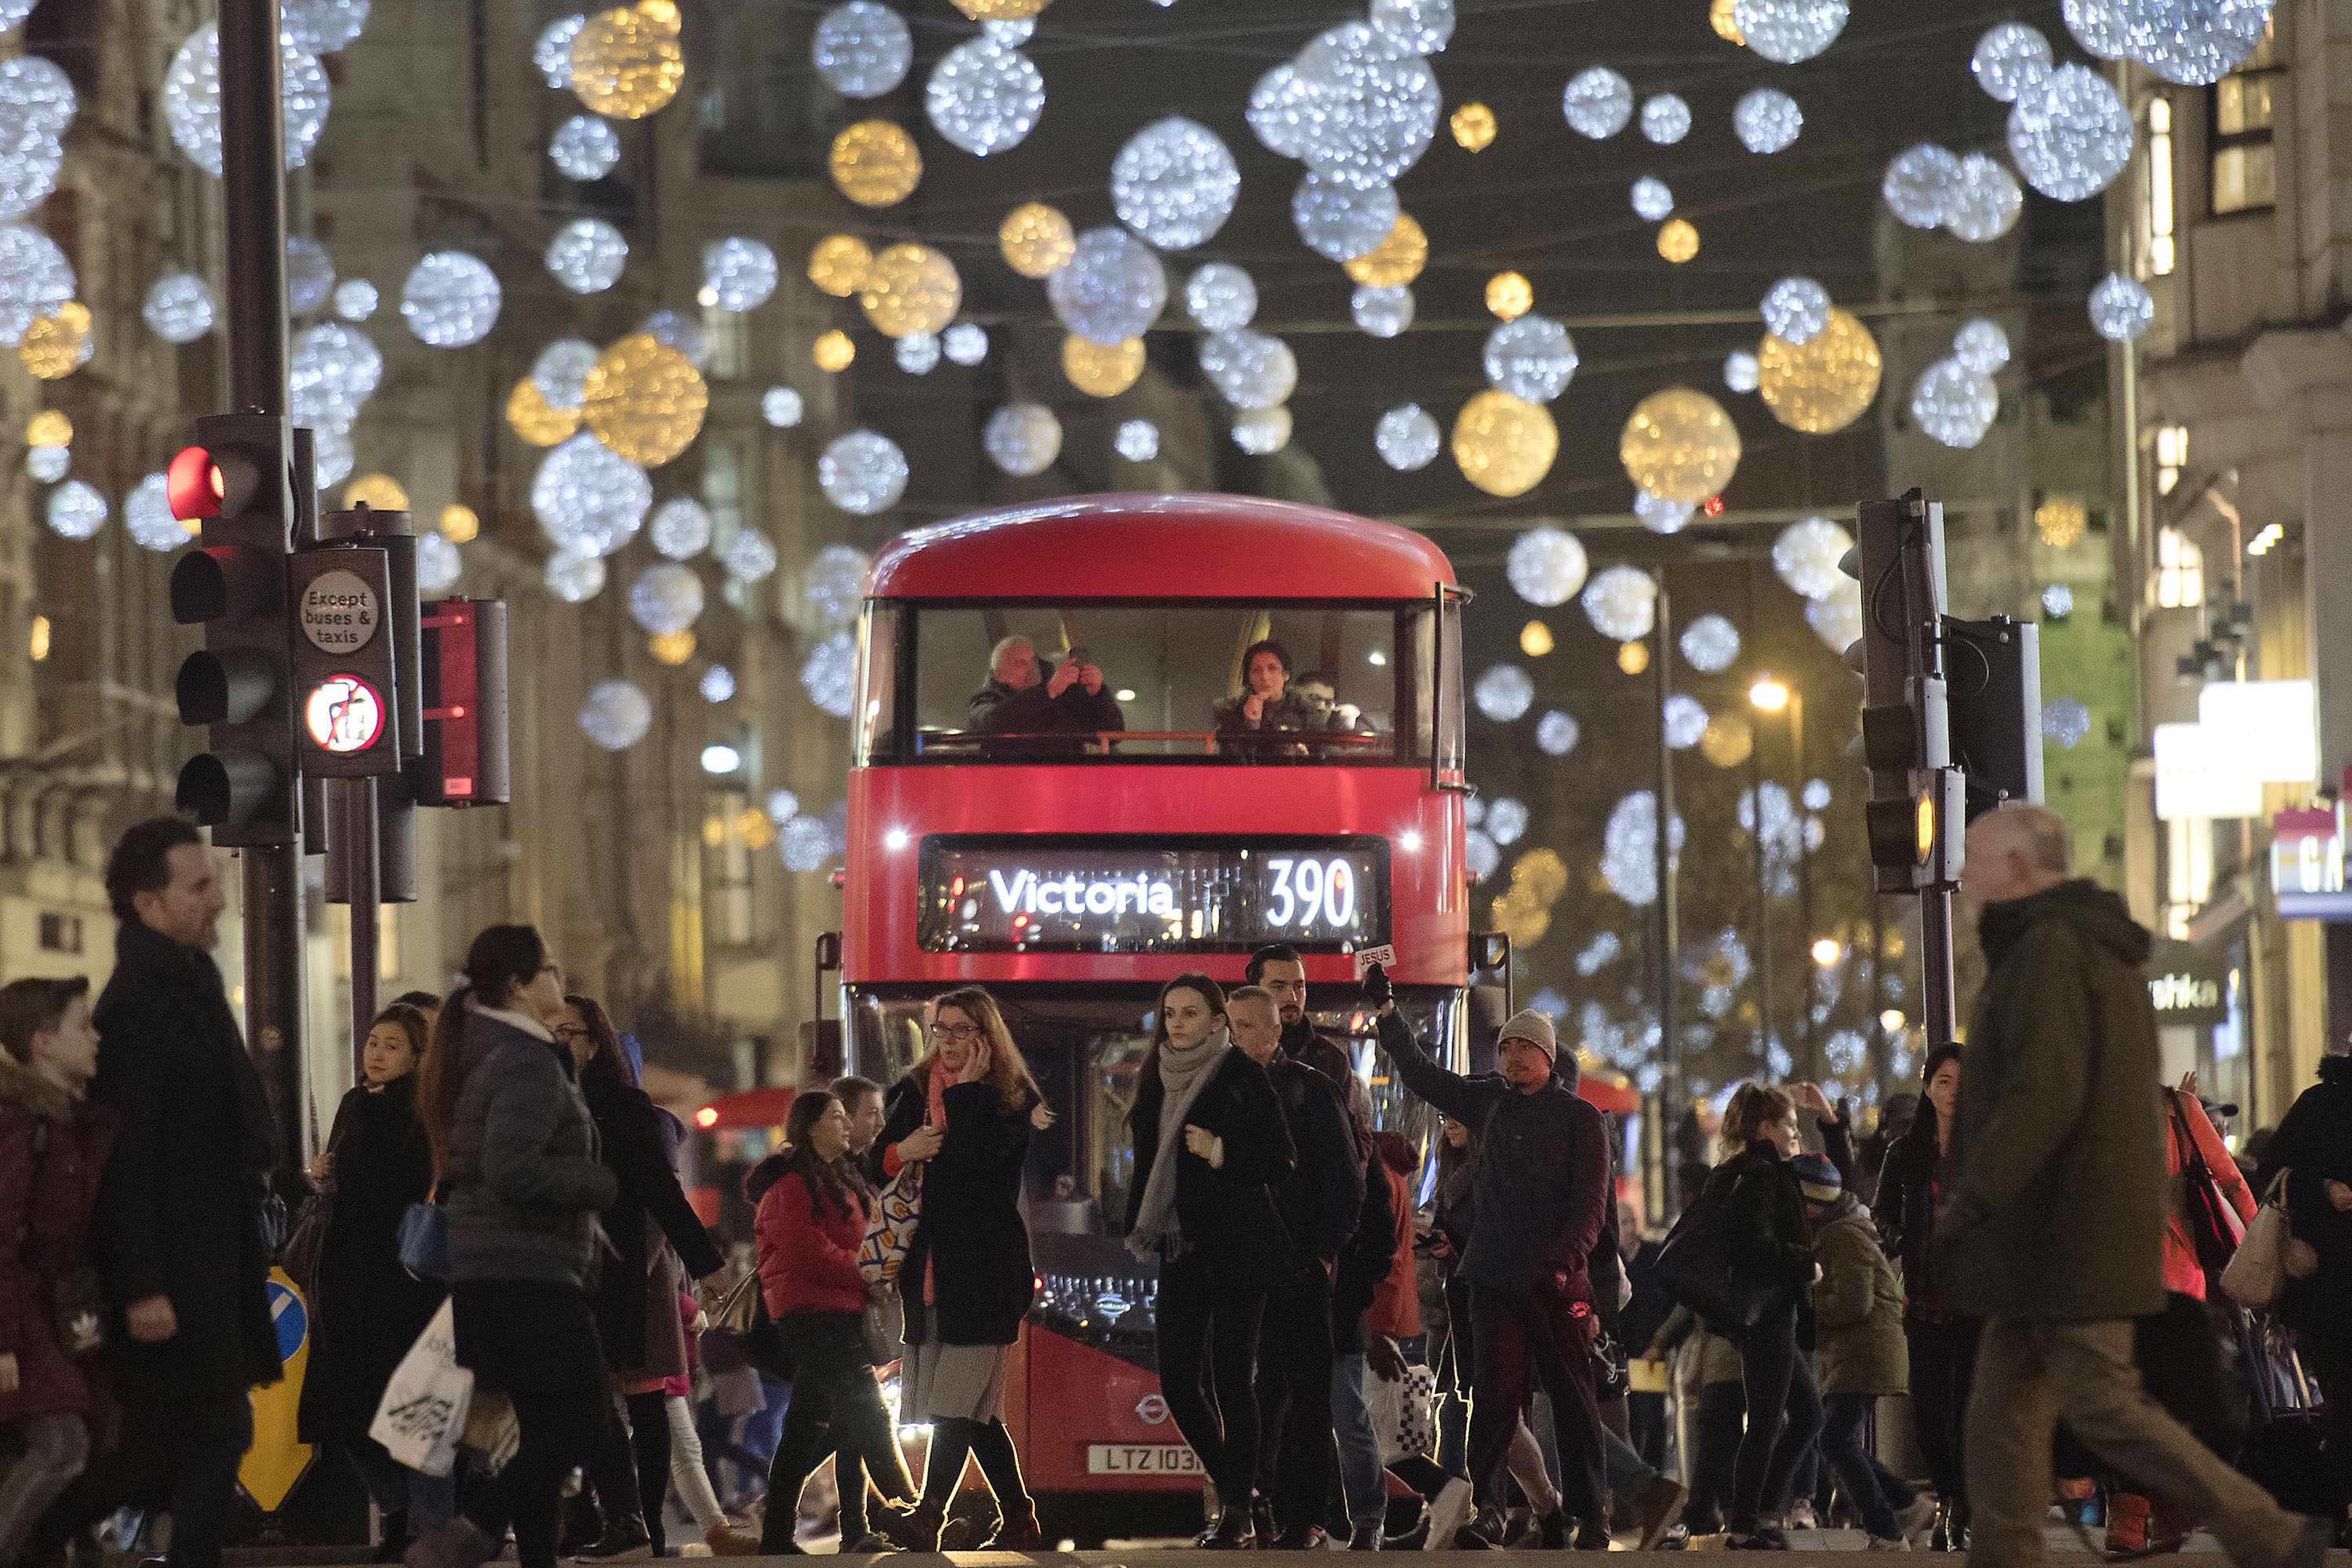 Shoppers cross in front of a London bus as it travels under Christmas lights on Oxford Street, in central London on December 5, 2017.  / AFP PHOTO / Justin TALLIS        (Photo credit should read JUSTIN TALLIS/AFP/Getty Images)